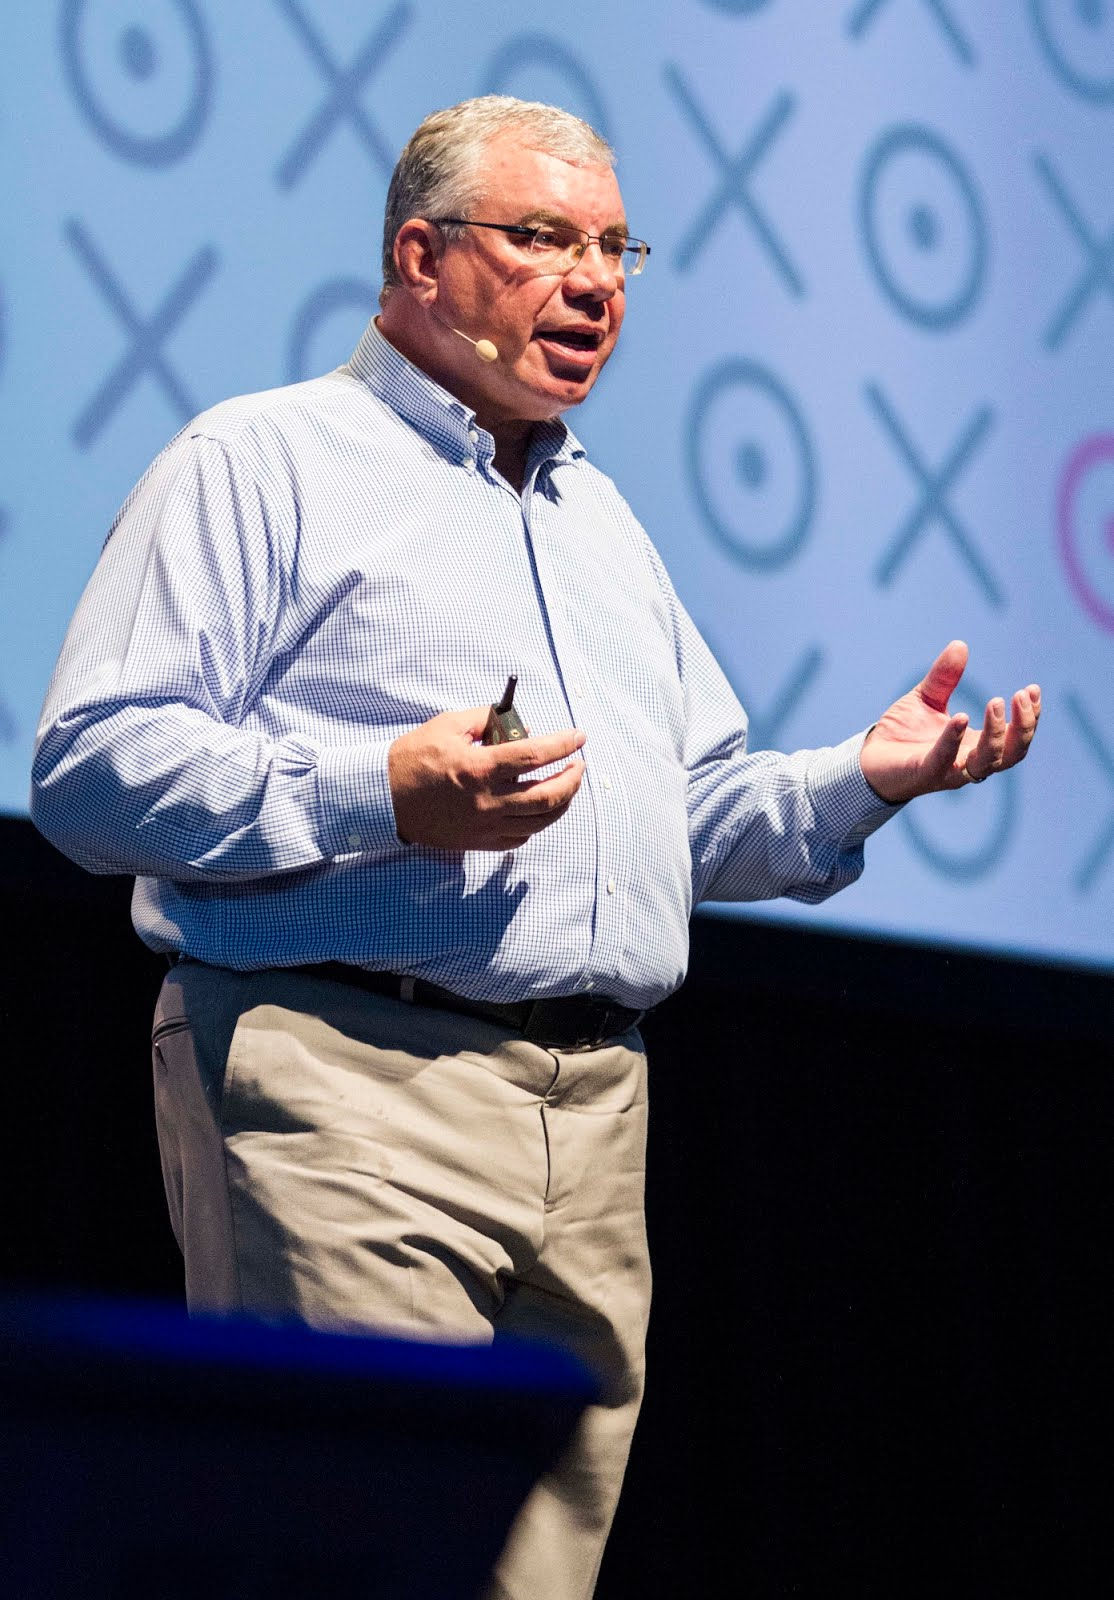 Gerhard Vorster, Chief Strategy Officer at Deloitte Australia and Asia Pacific, at Xerocon New Zealand 2014